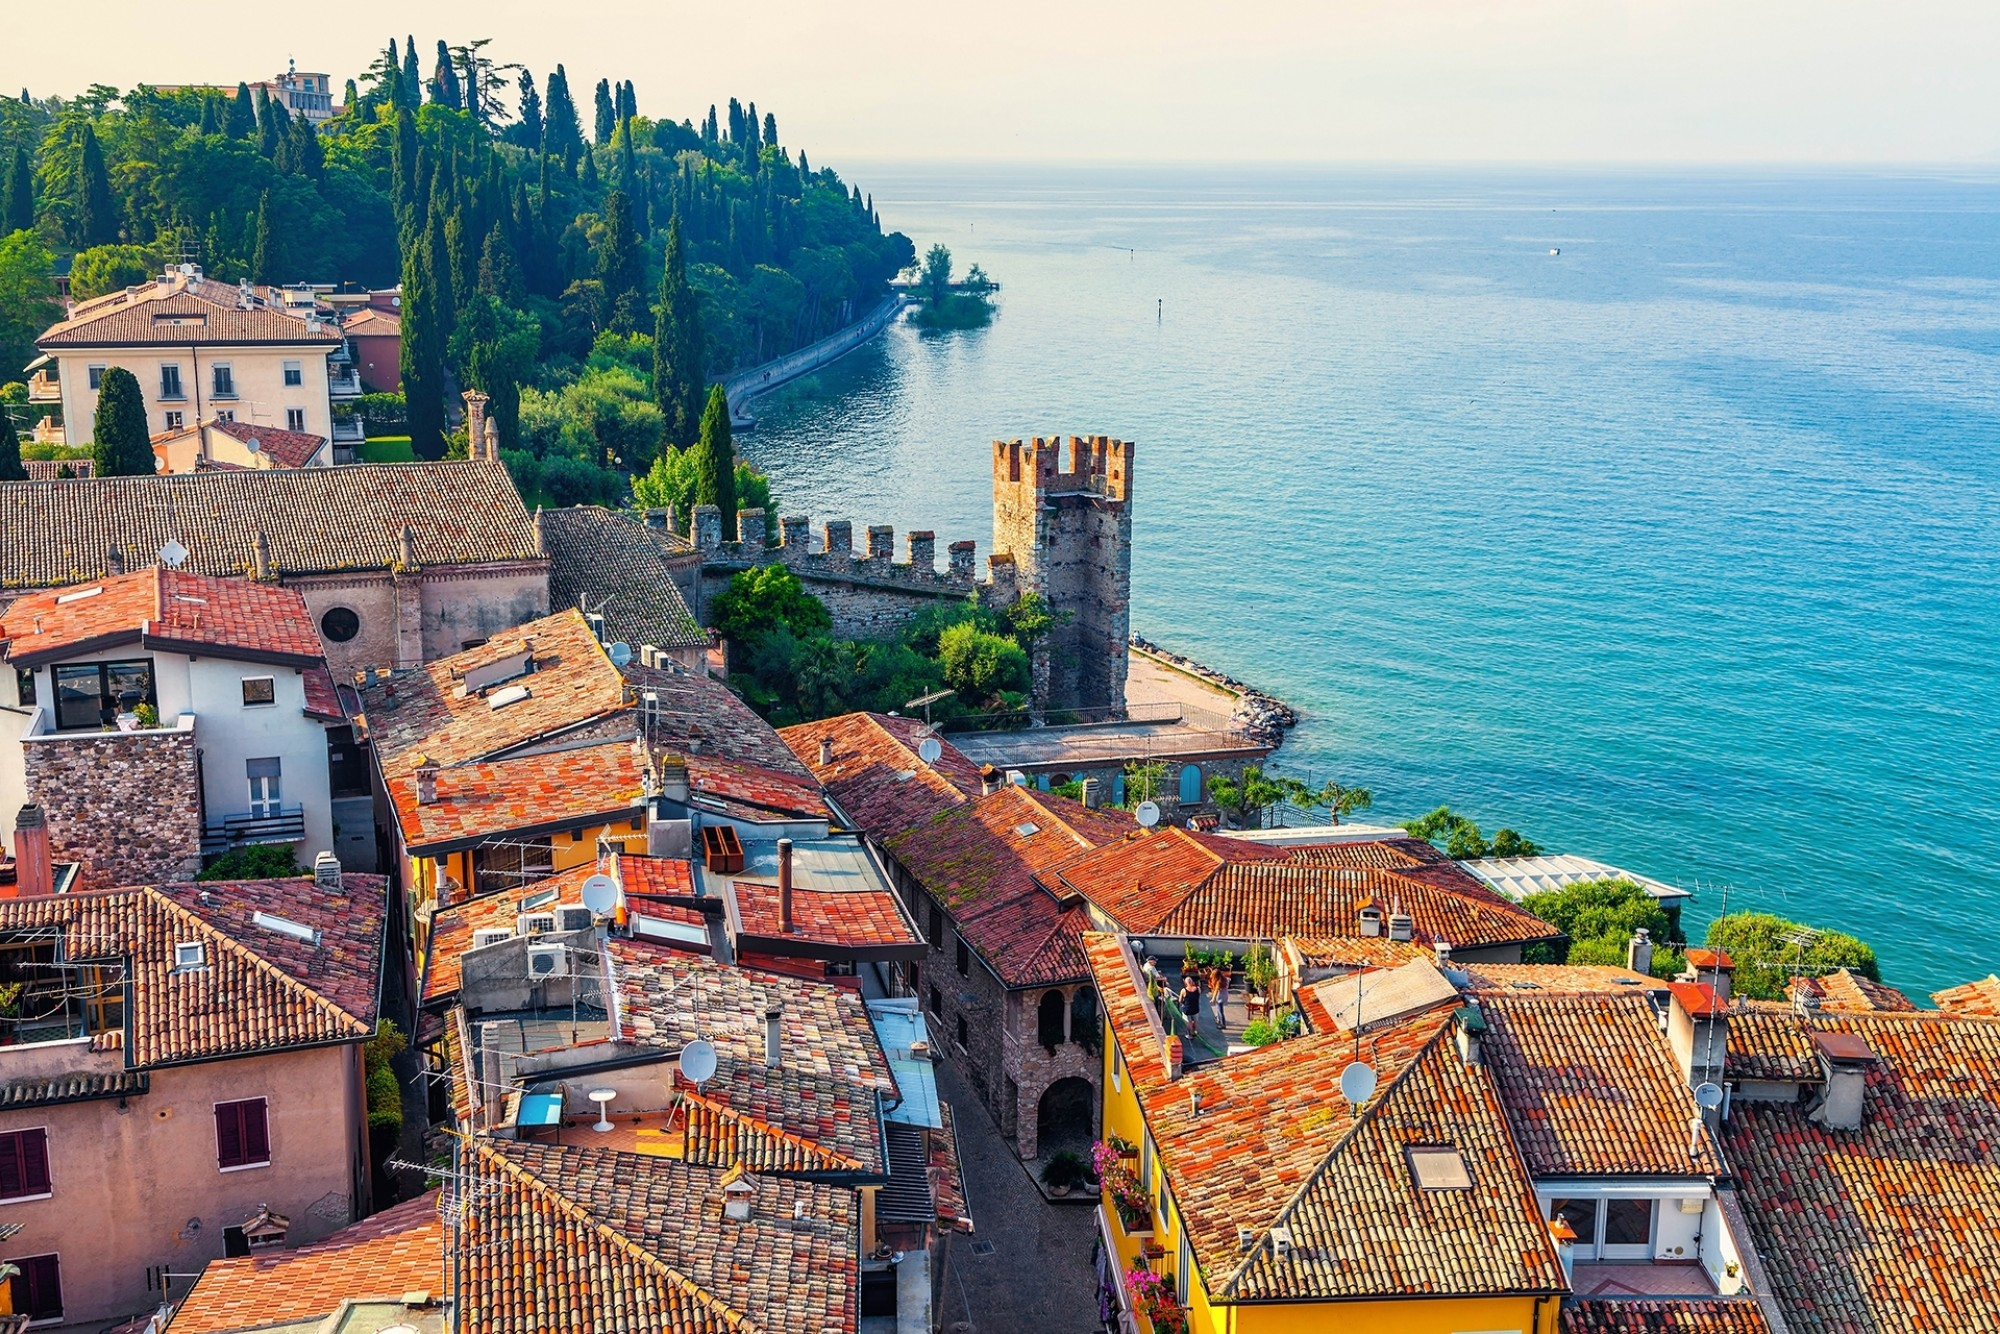 View-of-the-Italian-town-of-Sirmione-and-Lake-Garda-from-the-tower-Scaliger